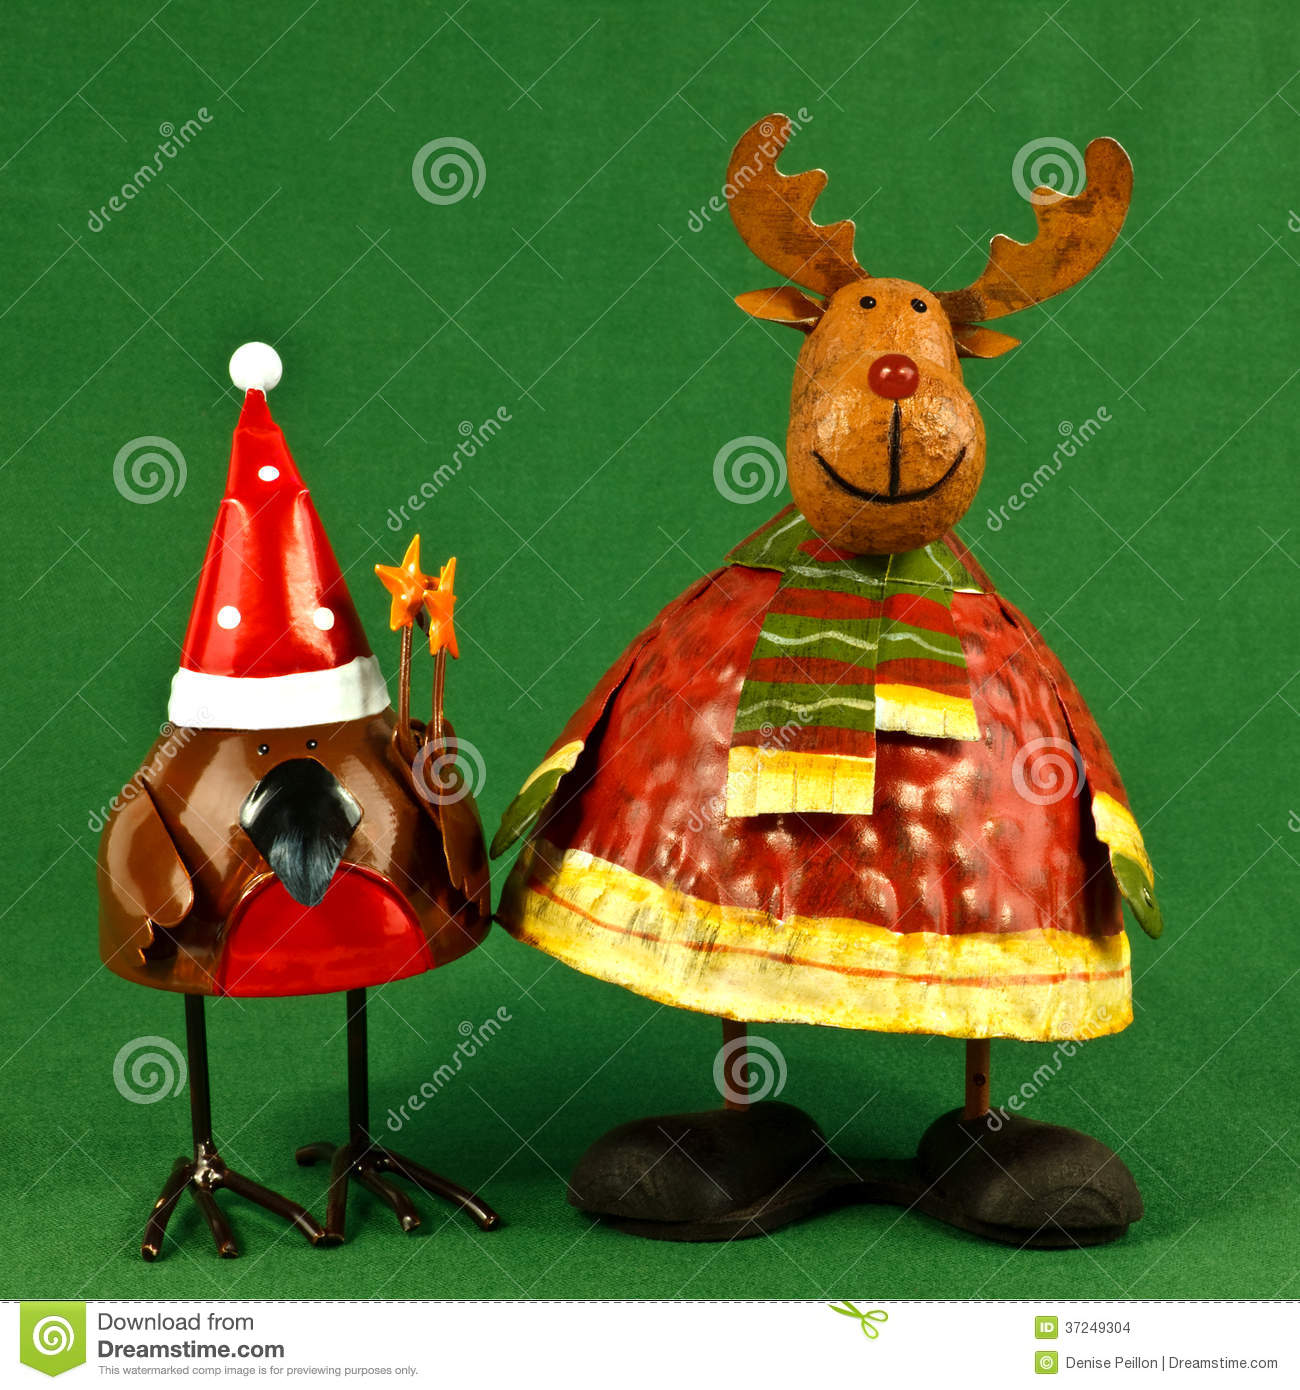 download robin and reindeer christmas decorations stock photo image of reindeer metal 37249304 - Metal Reindeer Christmas Decorations